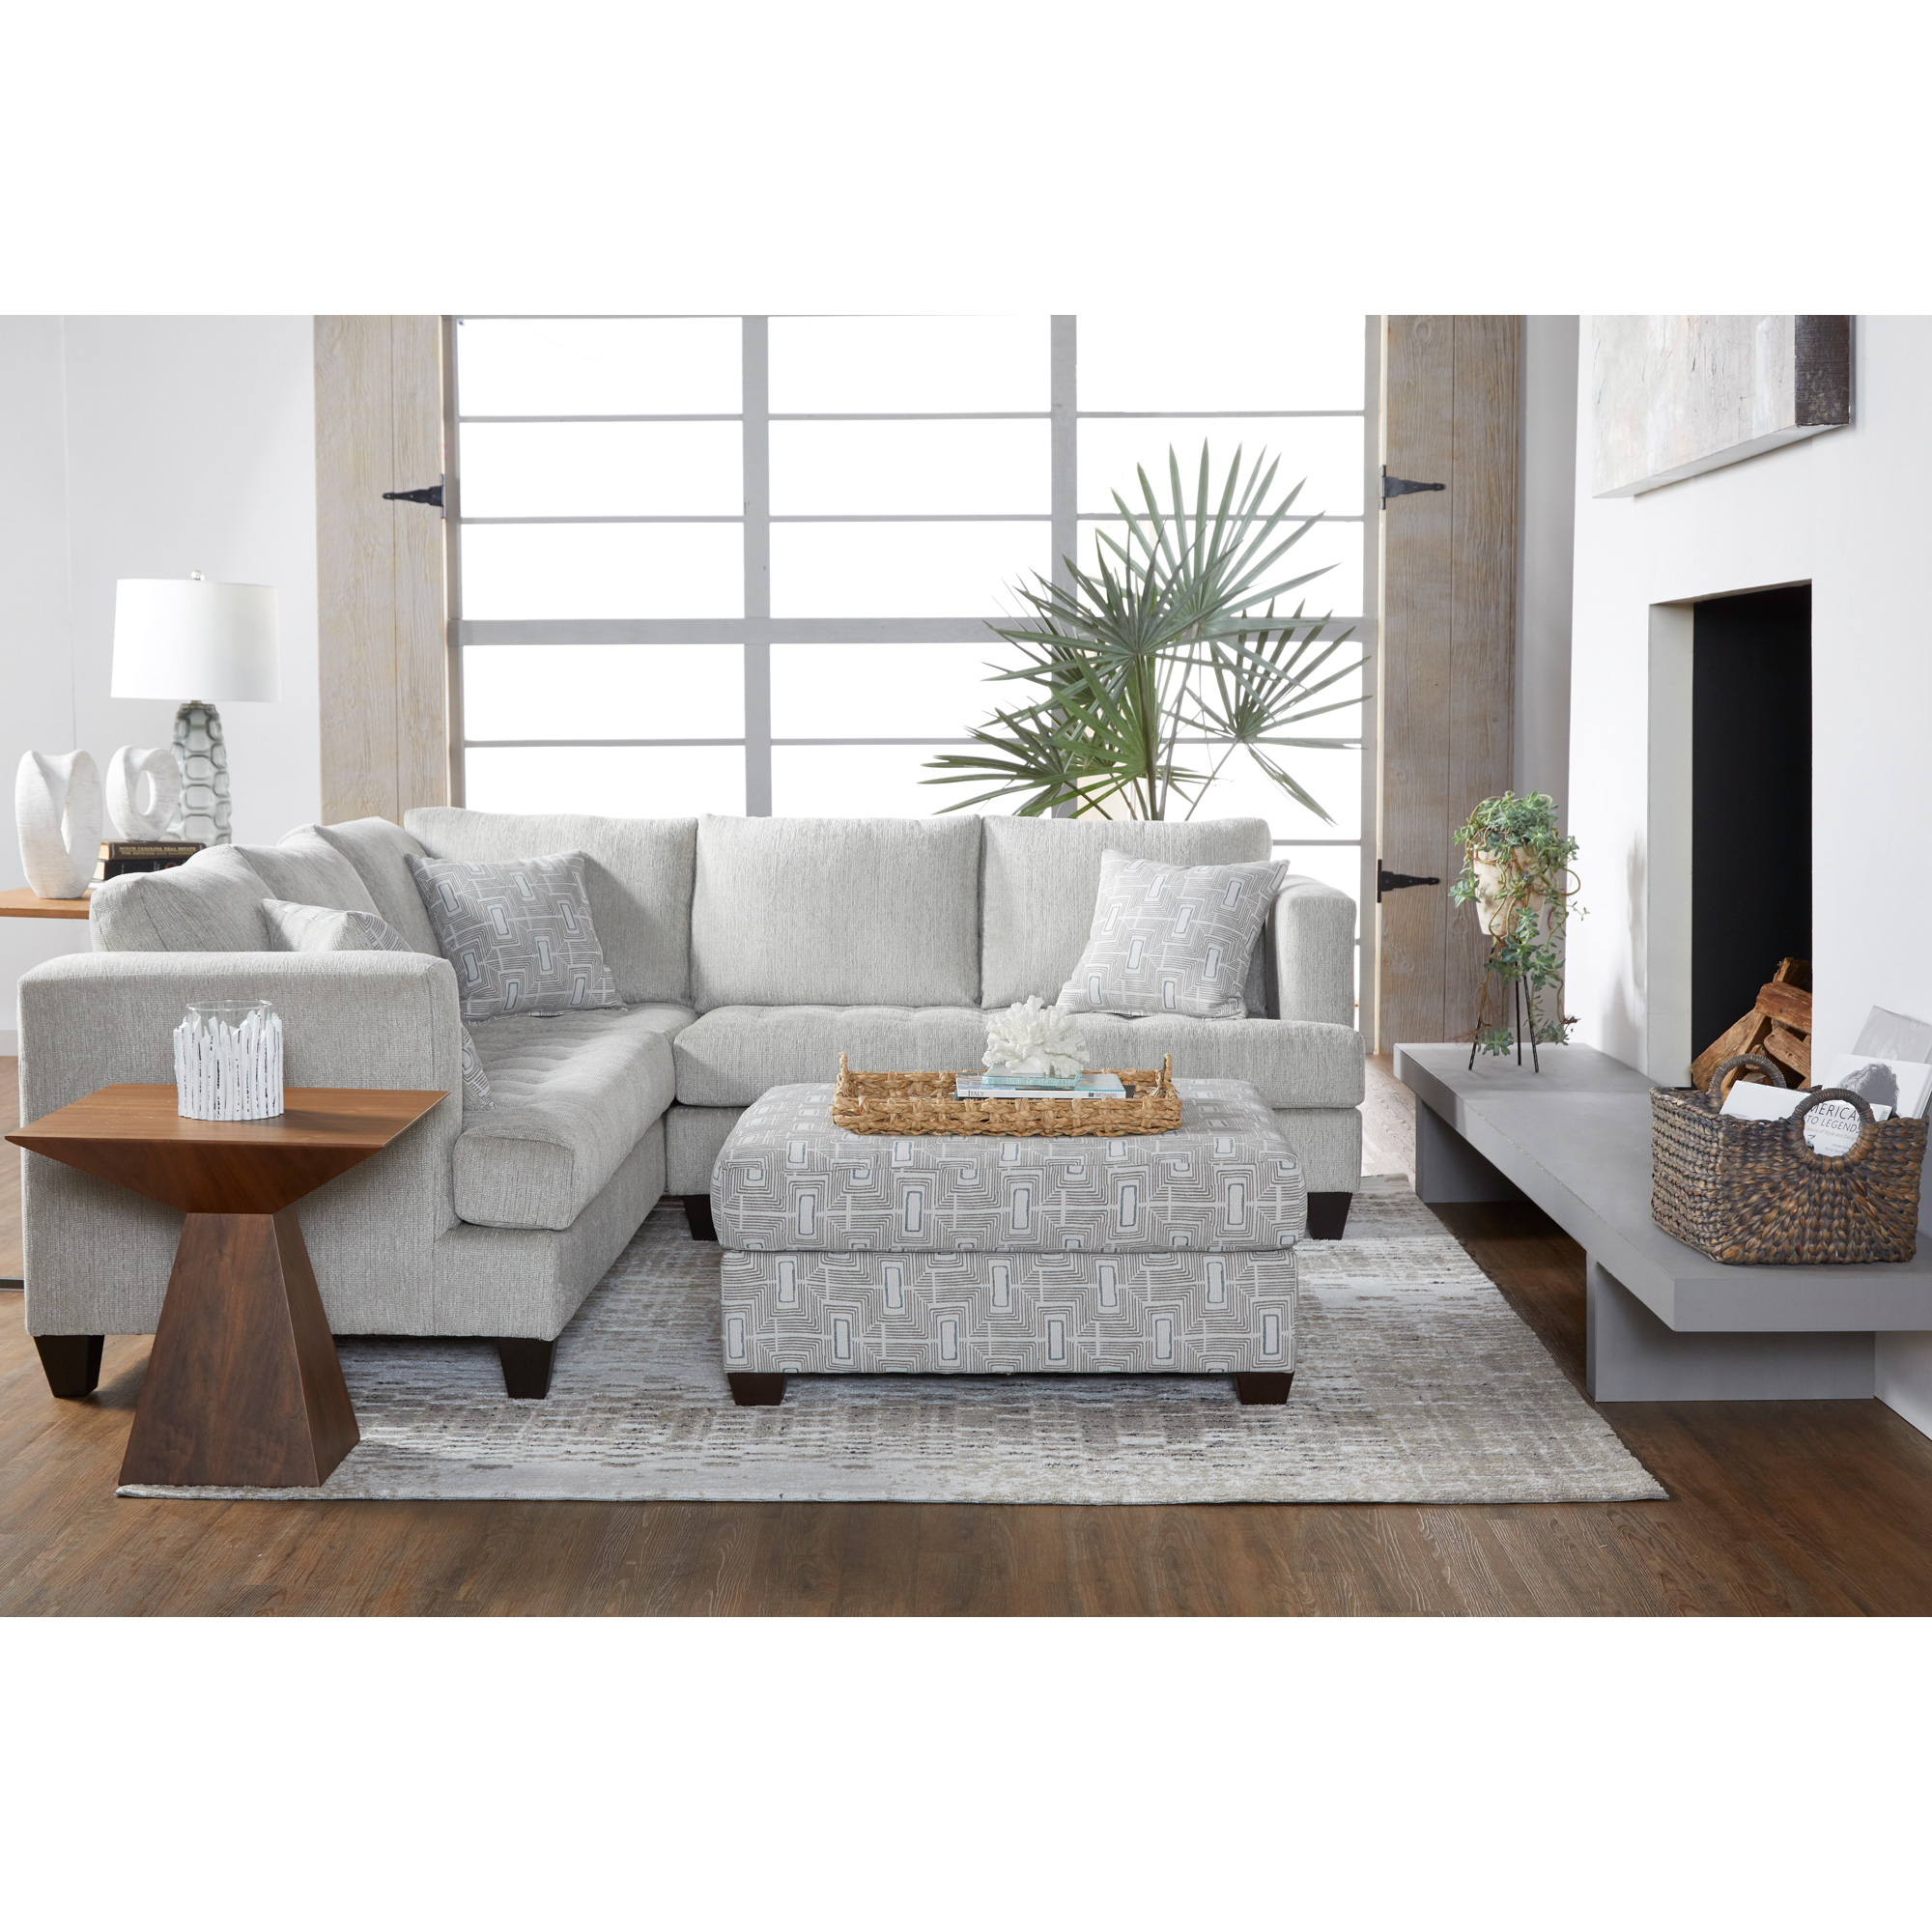 Serta Upholstery By Hughes Furniture | Asta Chiffon Sectional Sofa